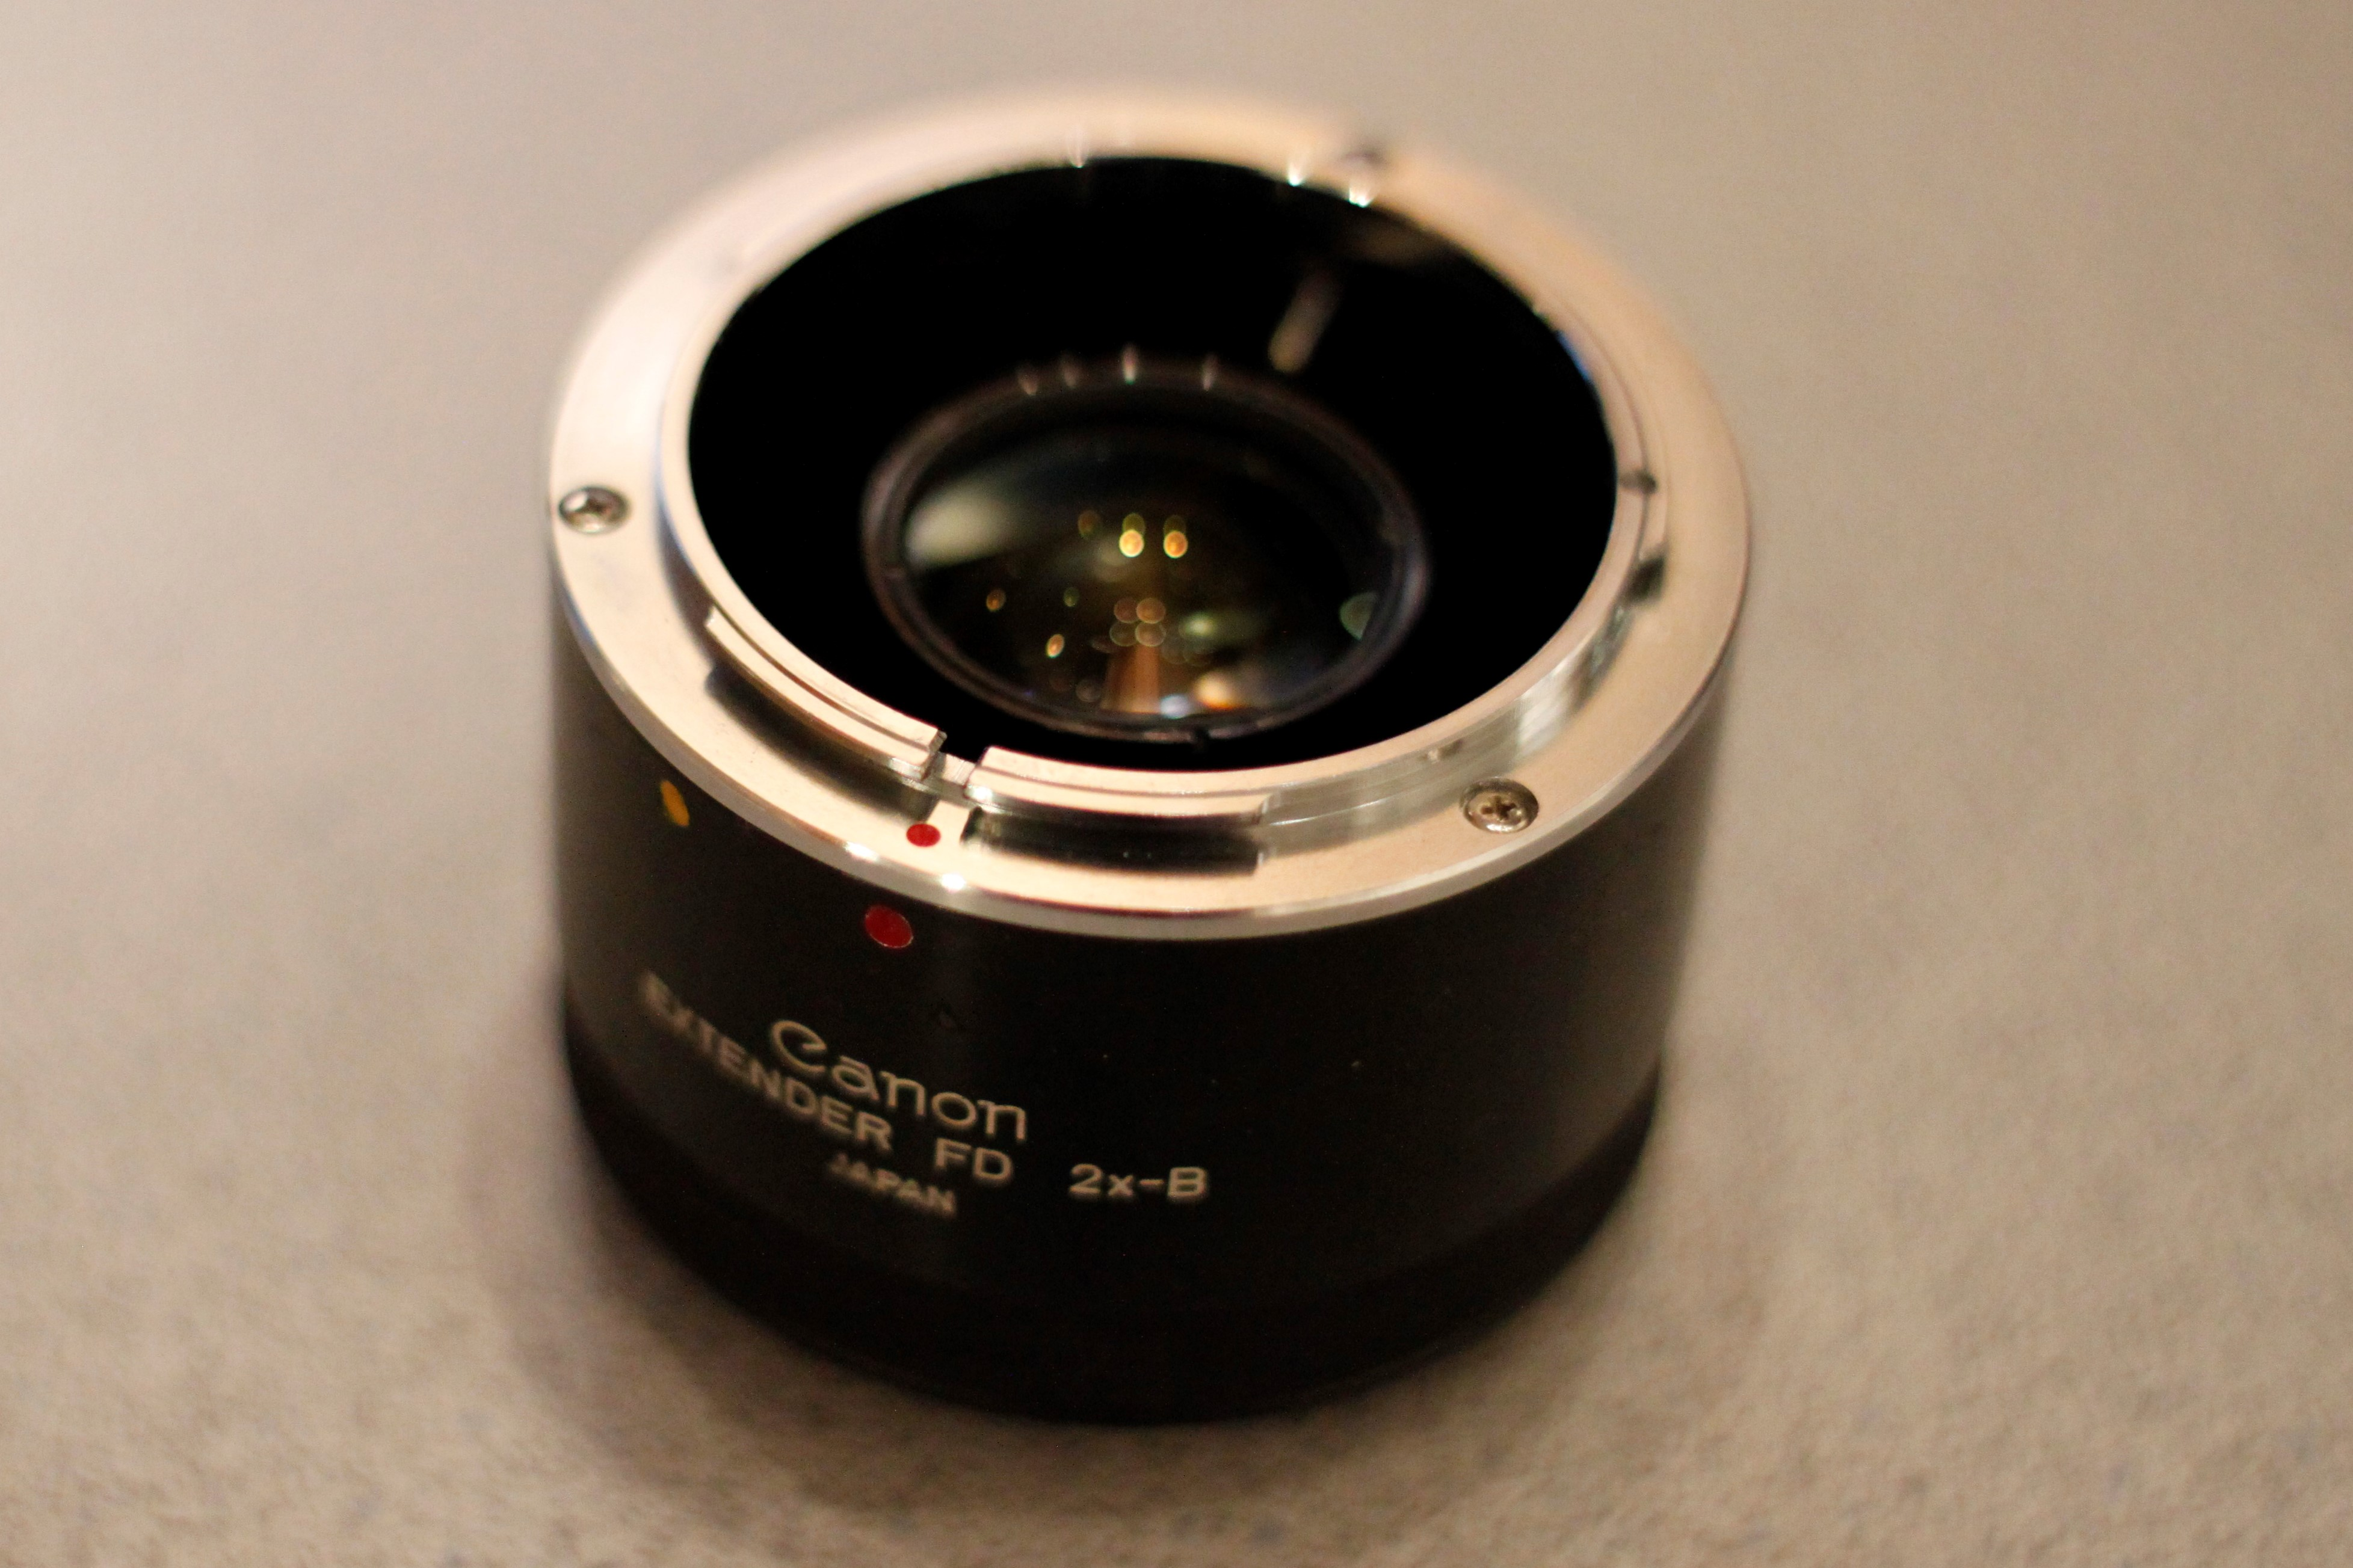 Using FD lenses on EOS body by adapters | Photo net Photography Forums